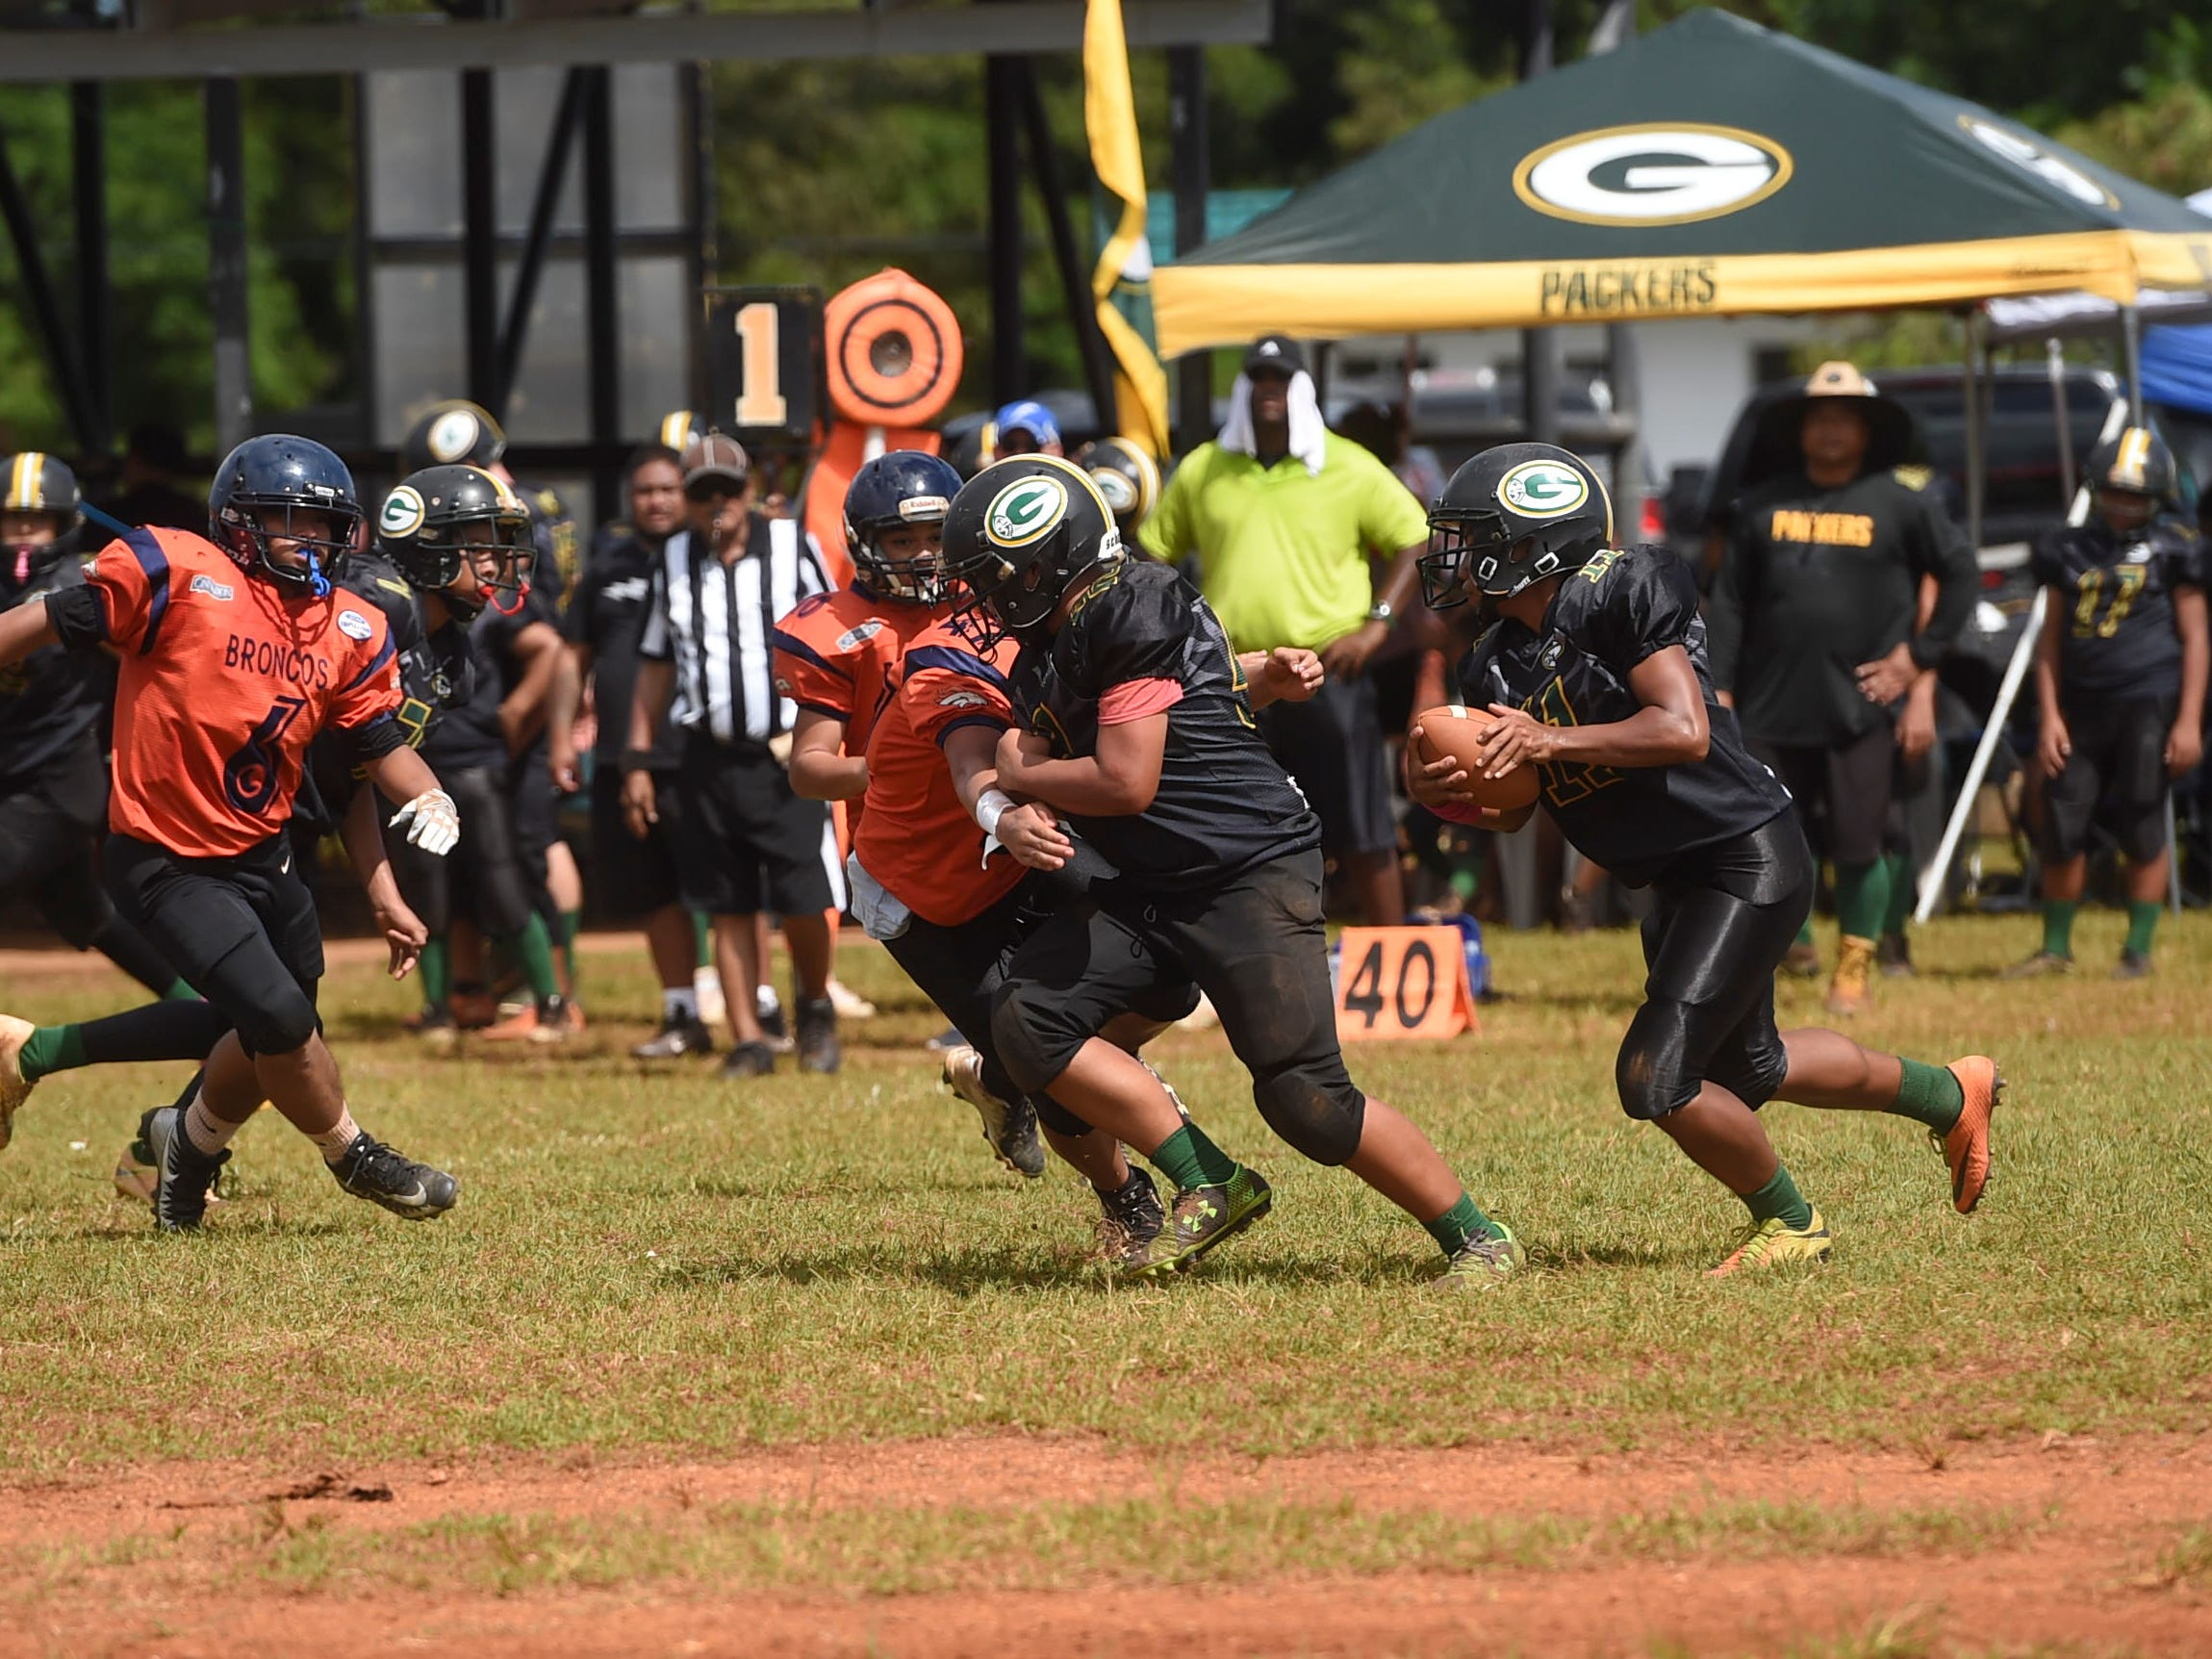 The Guam Packers faced the Cinnabon Island Broncos in a Guam National Youth Football Federation Matua division matchup at the Mikkel Tan I. Vy Field on Sept. 2, 2018.